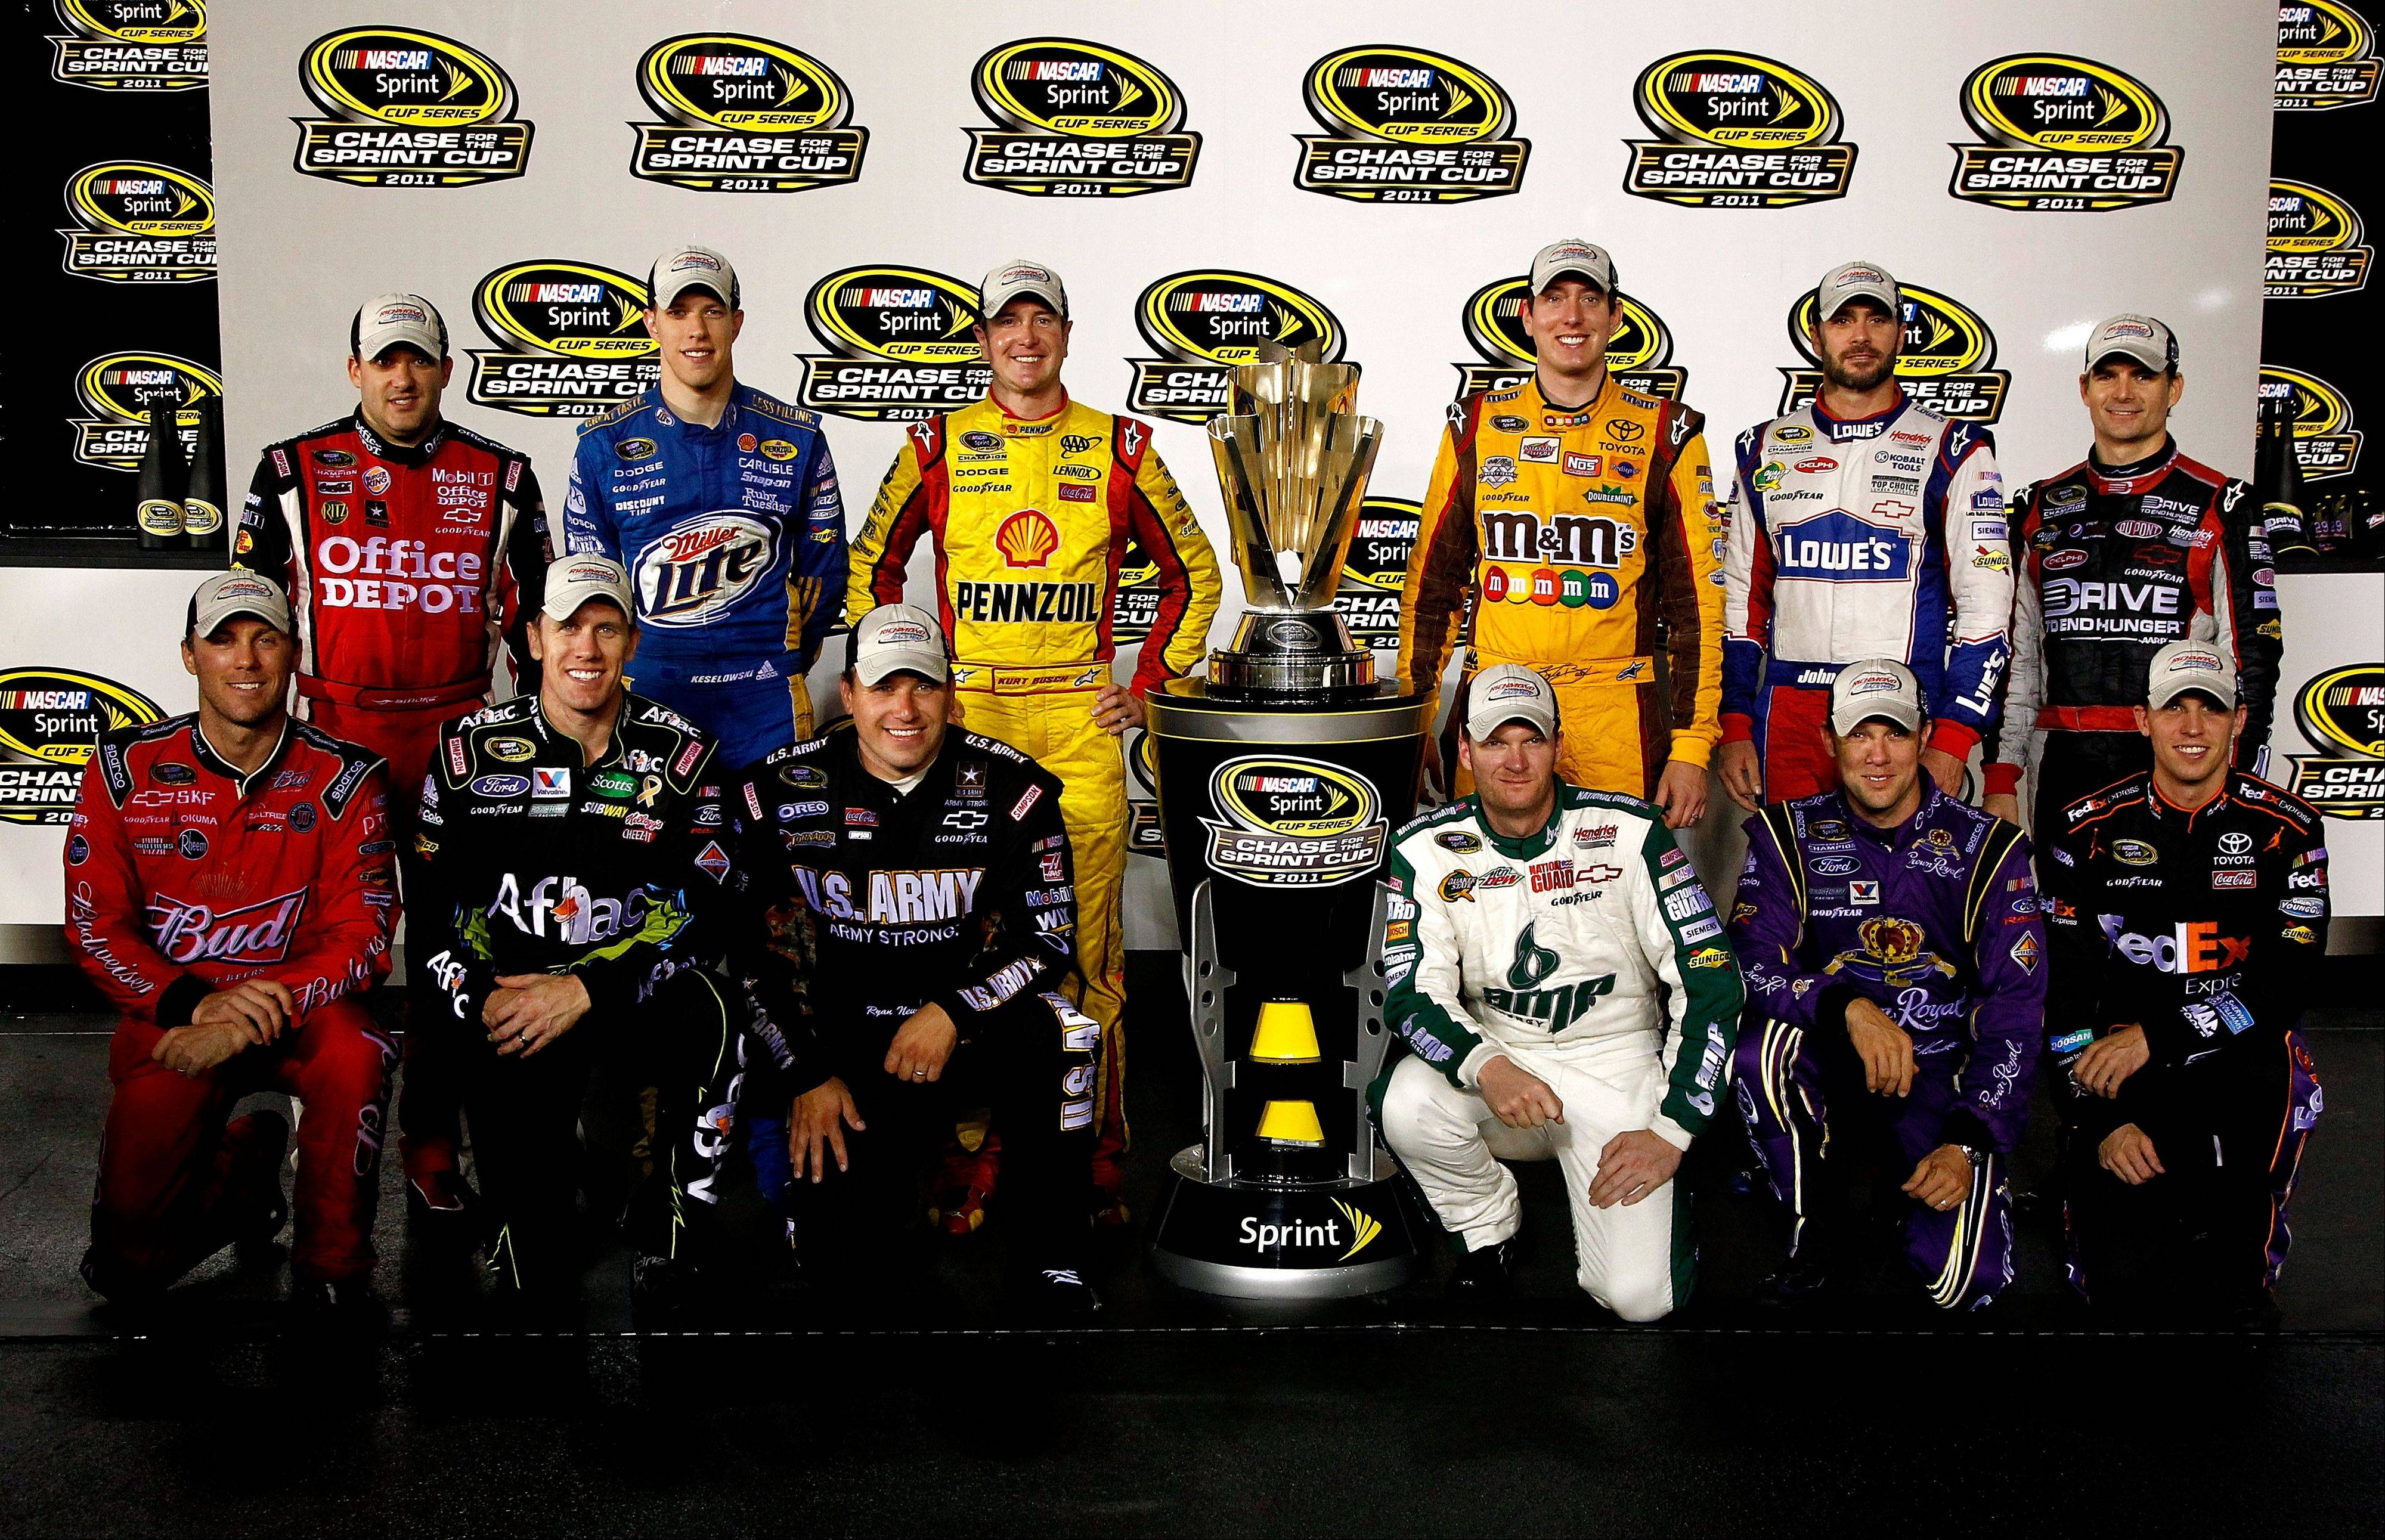 Here�s a look at the drivers who clinched spots in the NASCAR playoffs, the �Chase for the Sprint Cup� series, which begins this weekend at Chicagoland Speedway in Juliet. Back row (left to right): Tony Stewart, driver of the #14 Office Depot/Mobil 1 Chevrolet, Brad Keselowski, driver of the #2 Miller Lite Dodge, Kurt Busch, driver of the #22 Shell/Pennzoil Dodge, Kyle Busch, driver of the #18 M&M�s Toyota, Jimmie Johnson, driver of the #48 Lowe�s/Power of Pride Chevrolet, Jeff Gordon, driver of the #24 Drive to End Hunger Chevrolet. Front row (left to right): Kevin Harvick, driver of the #29 Budweiser Chevrolet, Carl Edwards, driver of the #99 Kellogg�s/Cheez-it Ford, Ryan Newman, driver of the #39 U.S. Army-9/11 Chevrolet, Dale Earnhardt Jr., driver of the #88 Amp Energy/National Guard Chevrolet, Matt Kenseth, driver of the #17 Ollie�s Bargain Outlet Ford, and Denny Hamlin, driver of the #11 FedEx Express Toyota.